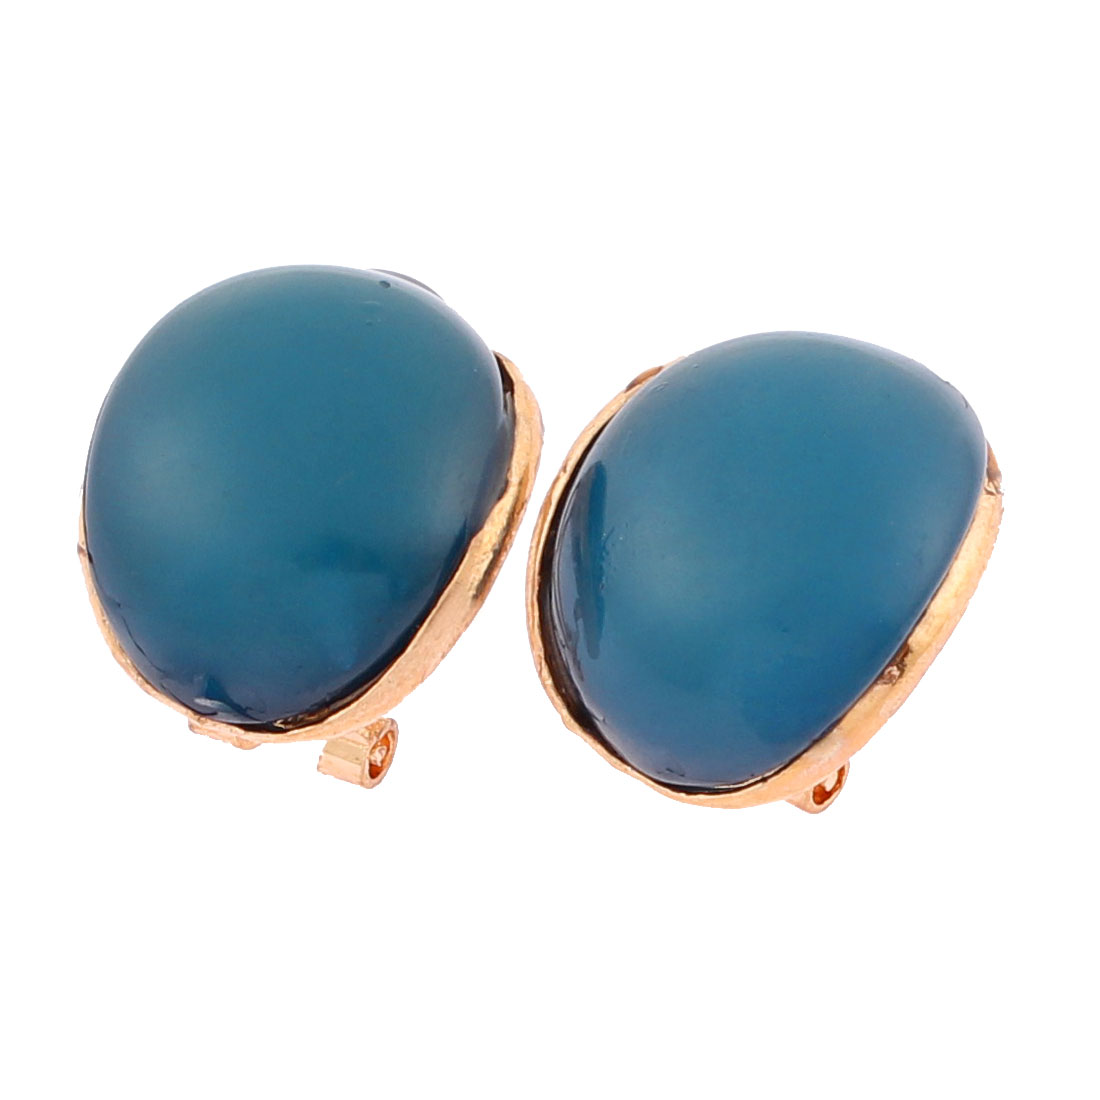 Lady Cambered Oval Shape Buckle Ear Stud Earrings Jewelry Pair